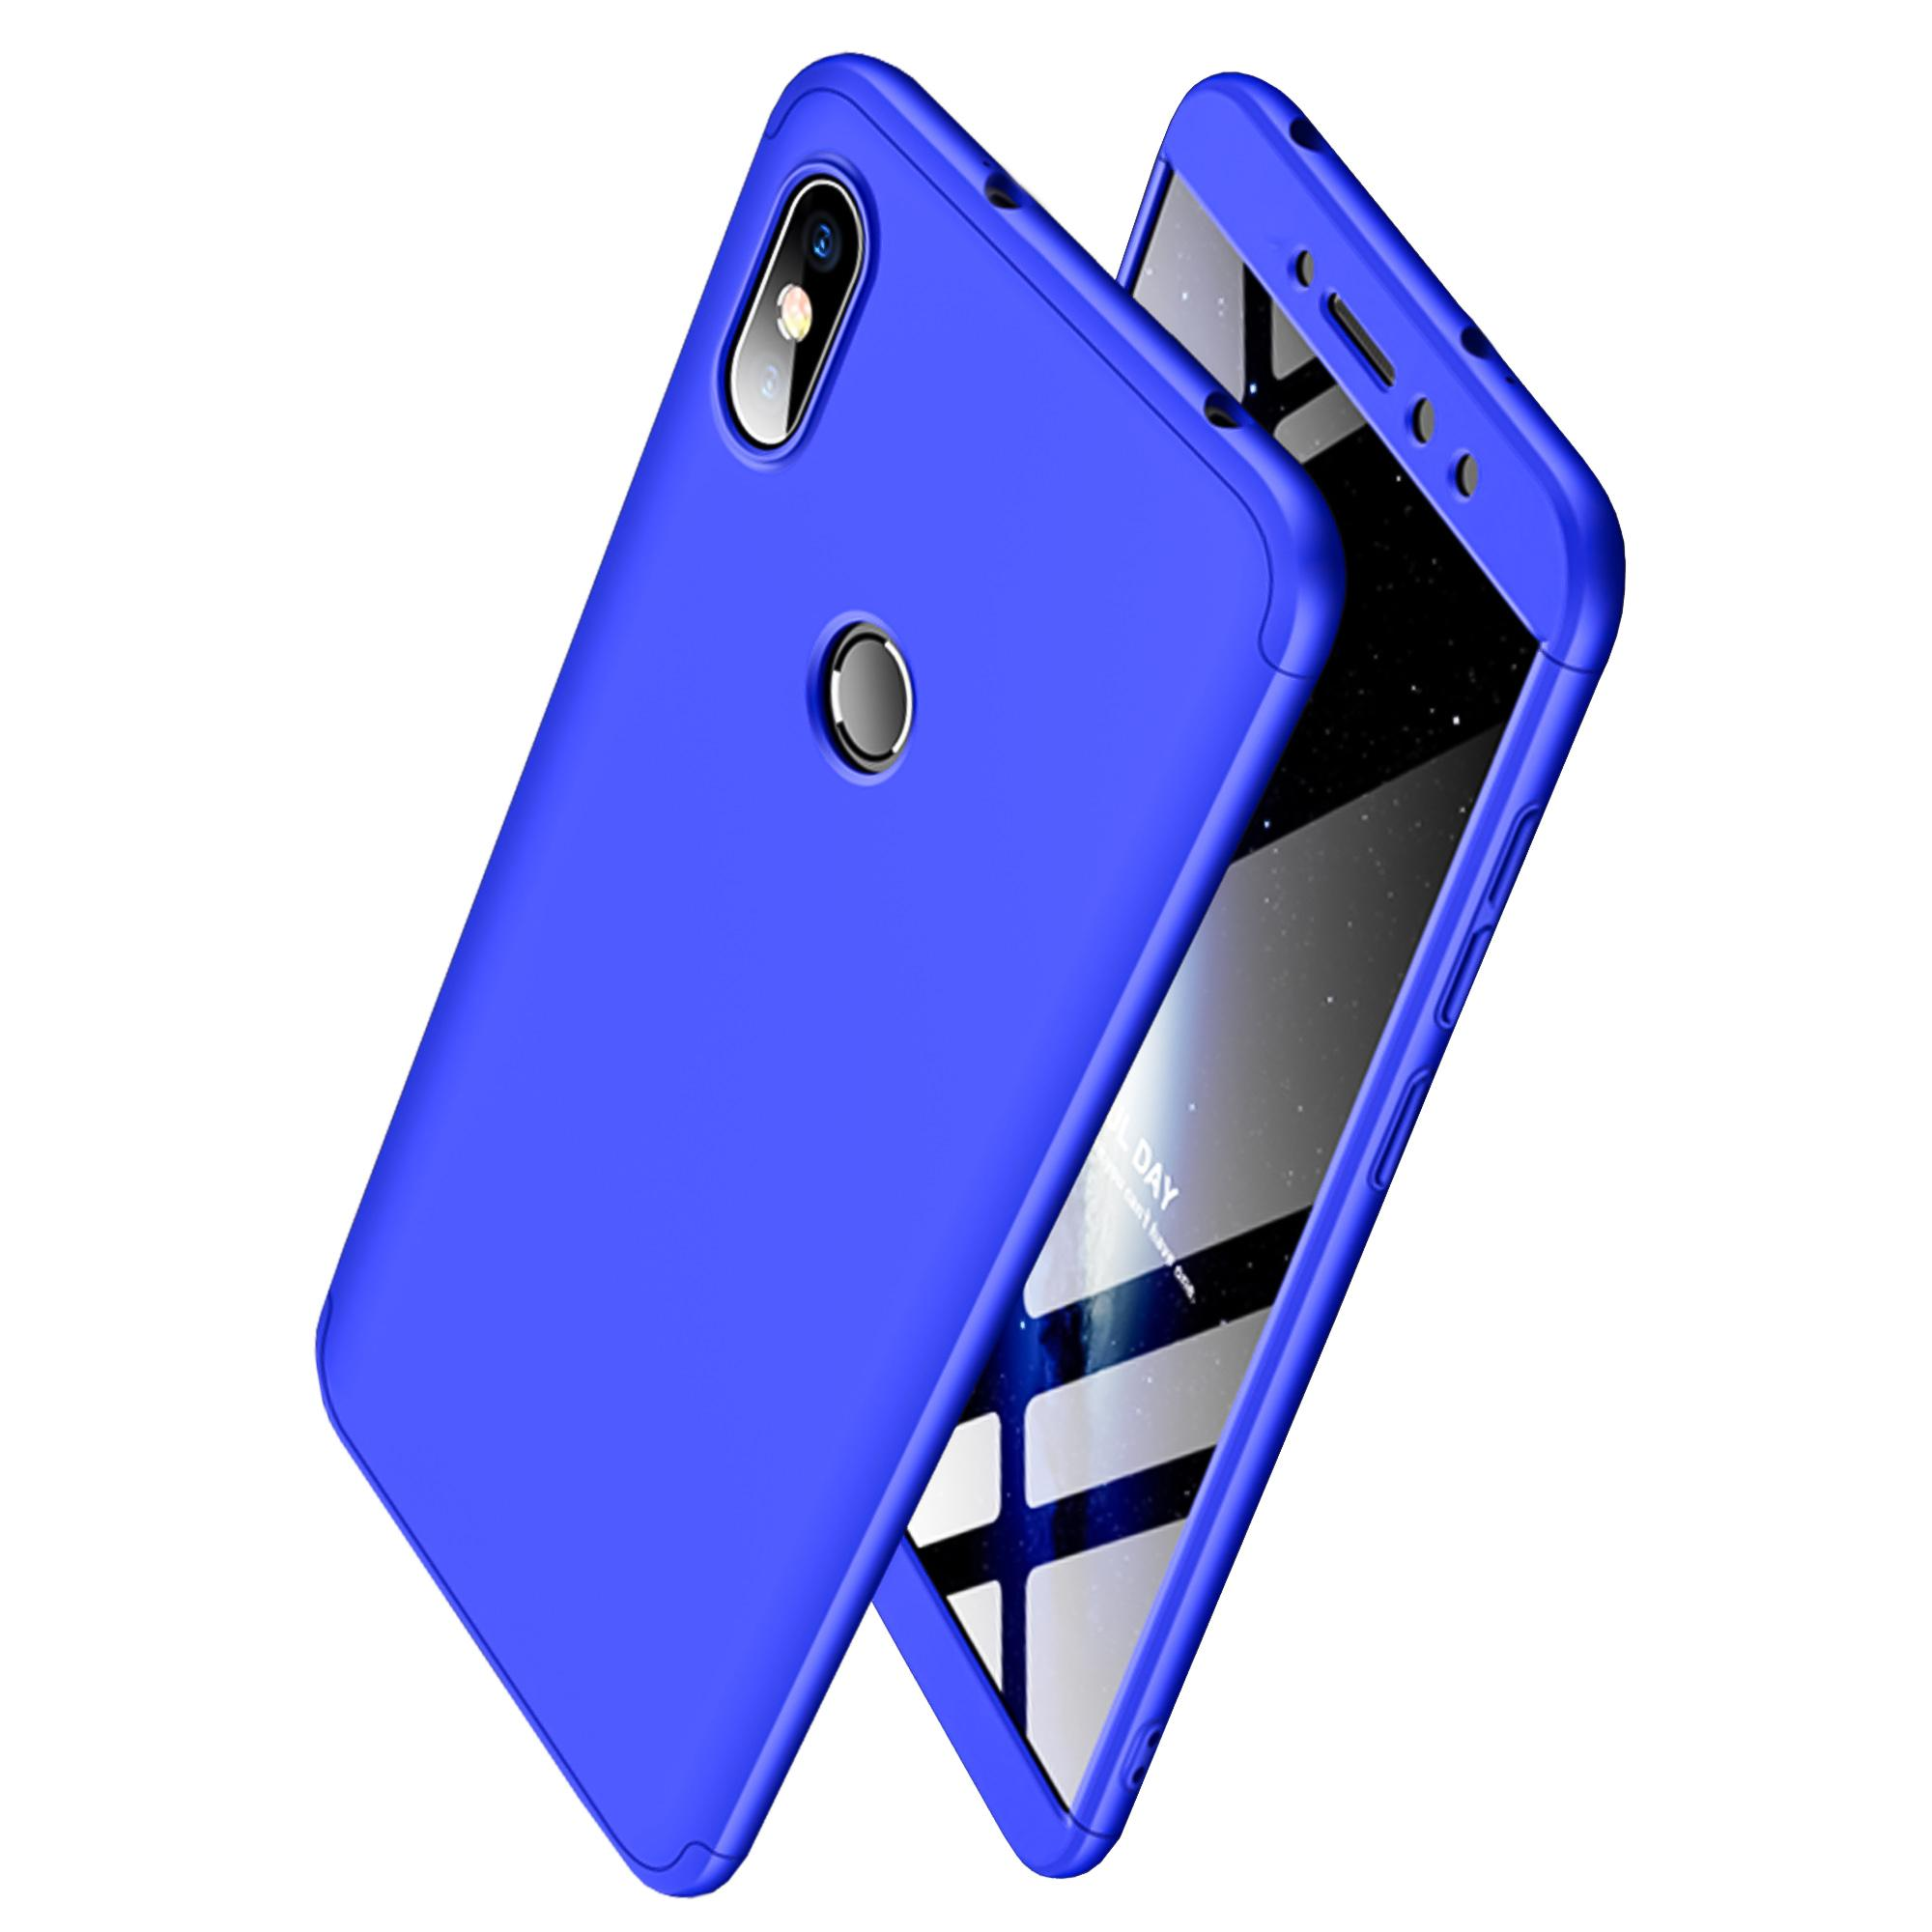 Casing Handphone Terlengkap Soeok Calandiva Premium Front Back Samsung Galaxy J6 2018 56 Inch Tg Biru 360 Full Cover Protection Case For Xiaomi Redmi S2 New Tempered Glass